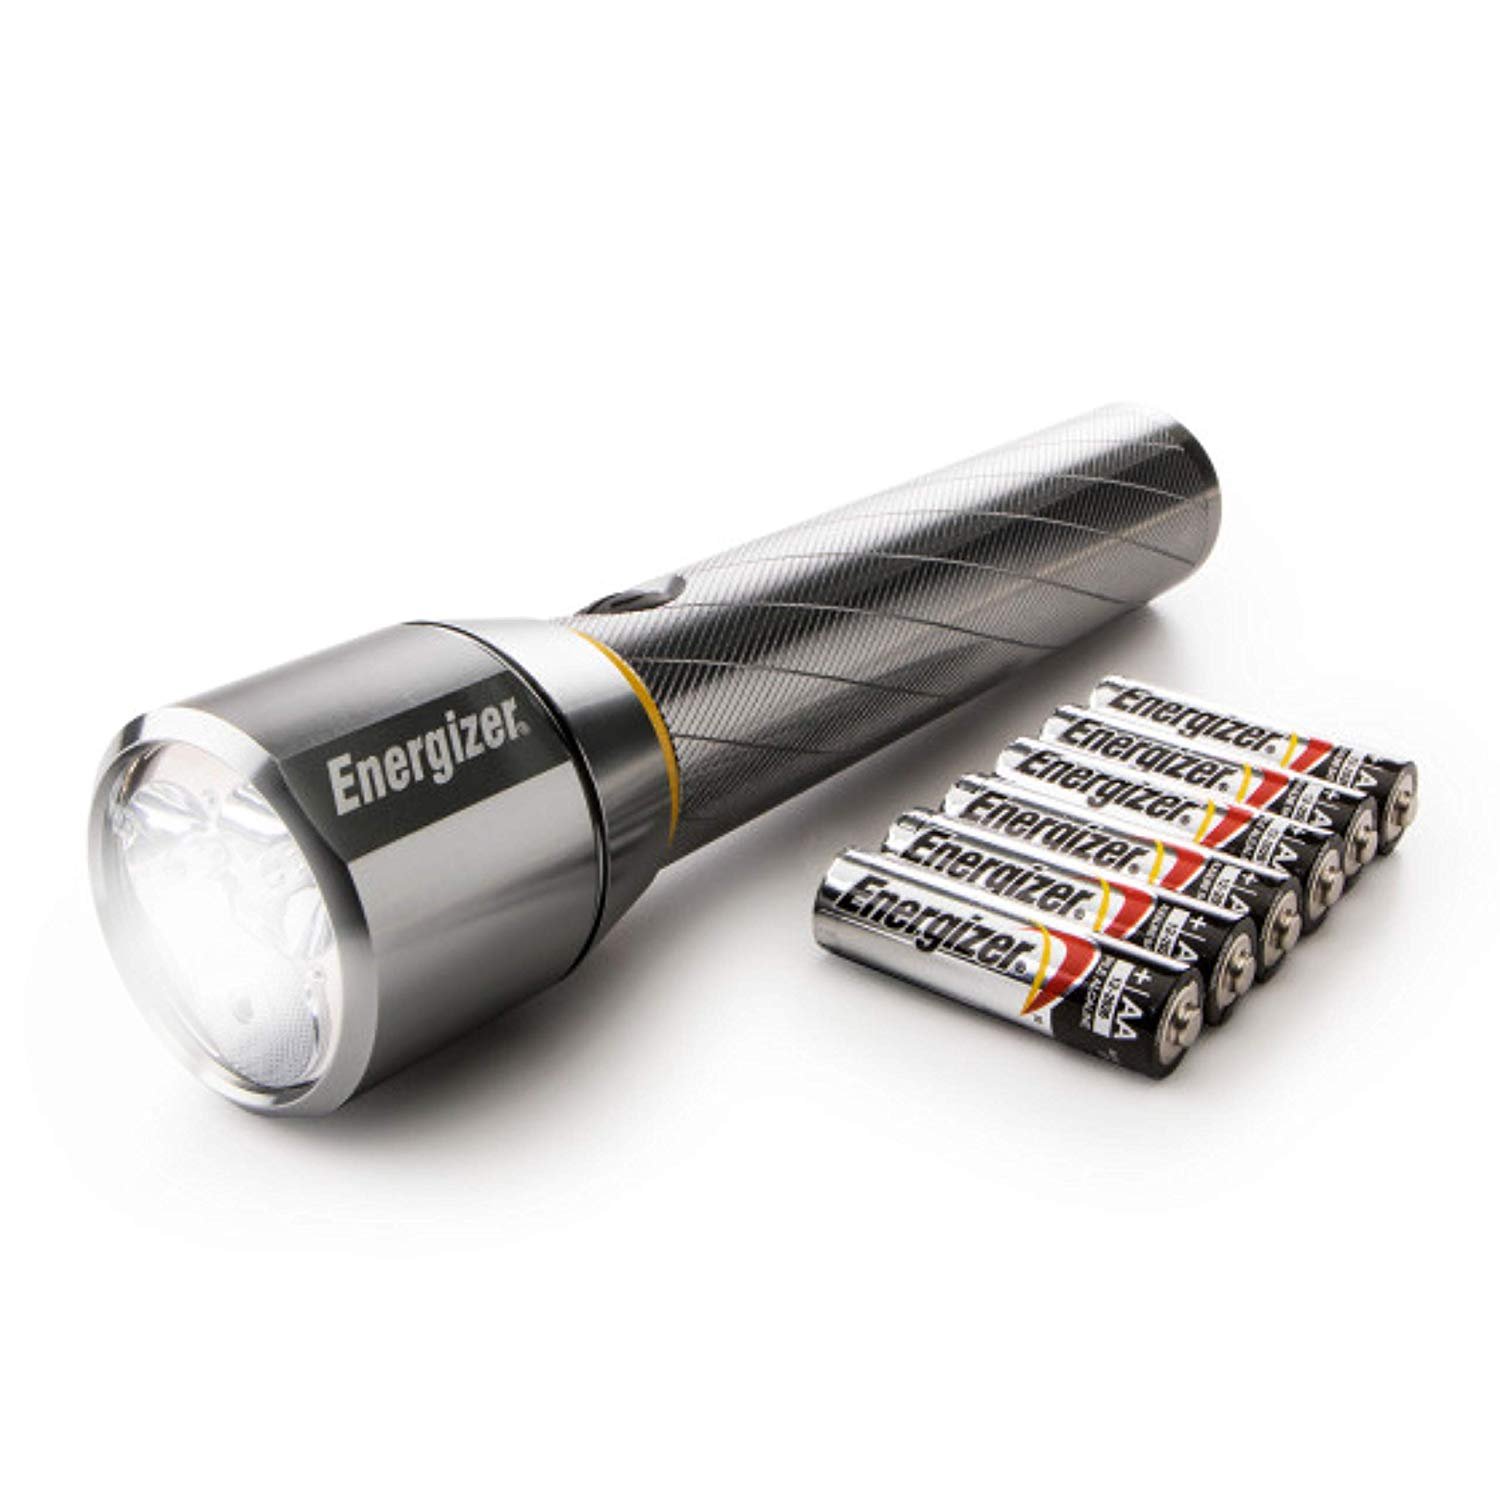 Energizer LED Tactical Metal Flashlight only $18.27 with coupon!